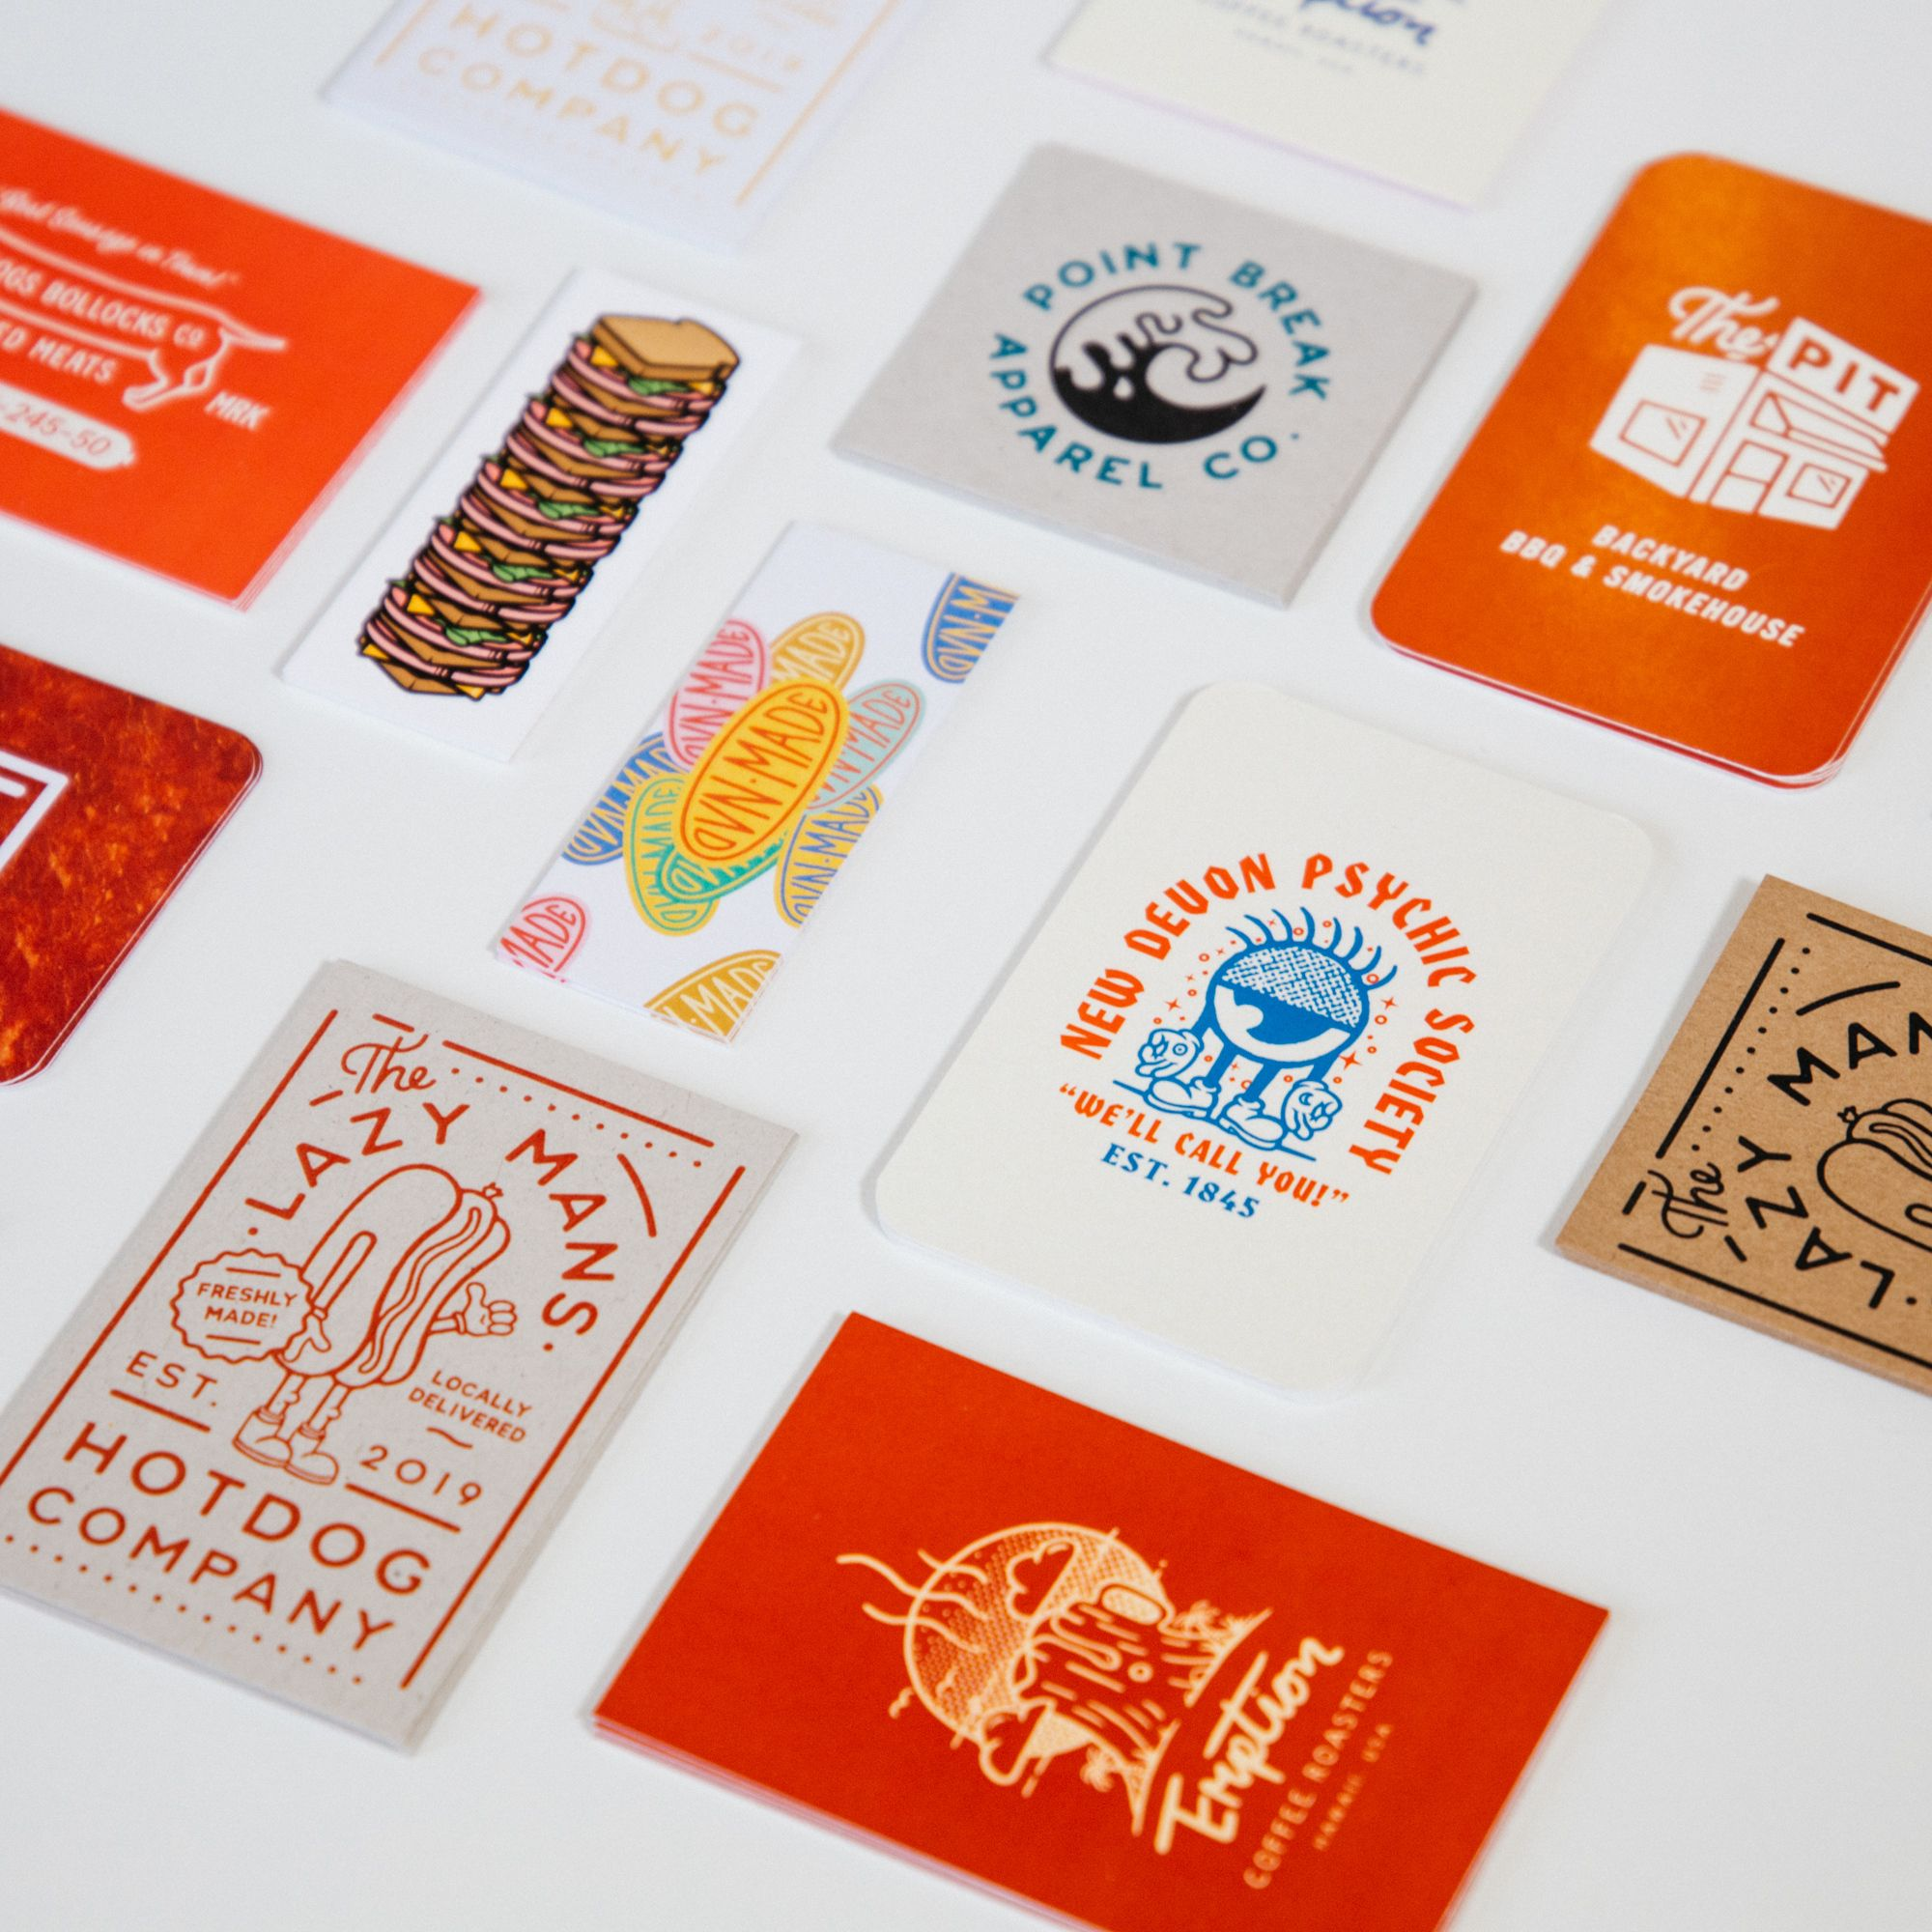 New Business Cards By Bearded Creative Studio Printing Business Cards Business Cards Cards